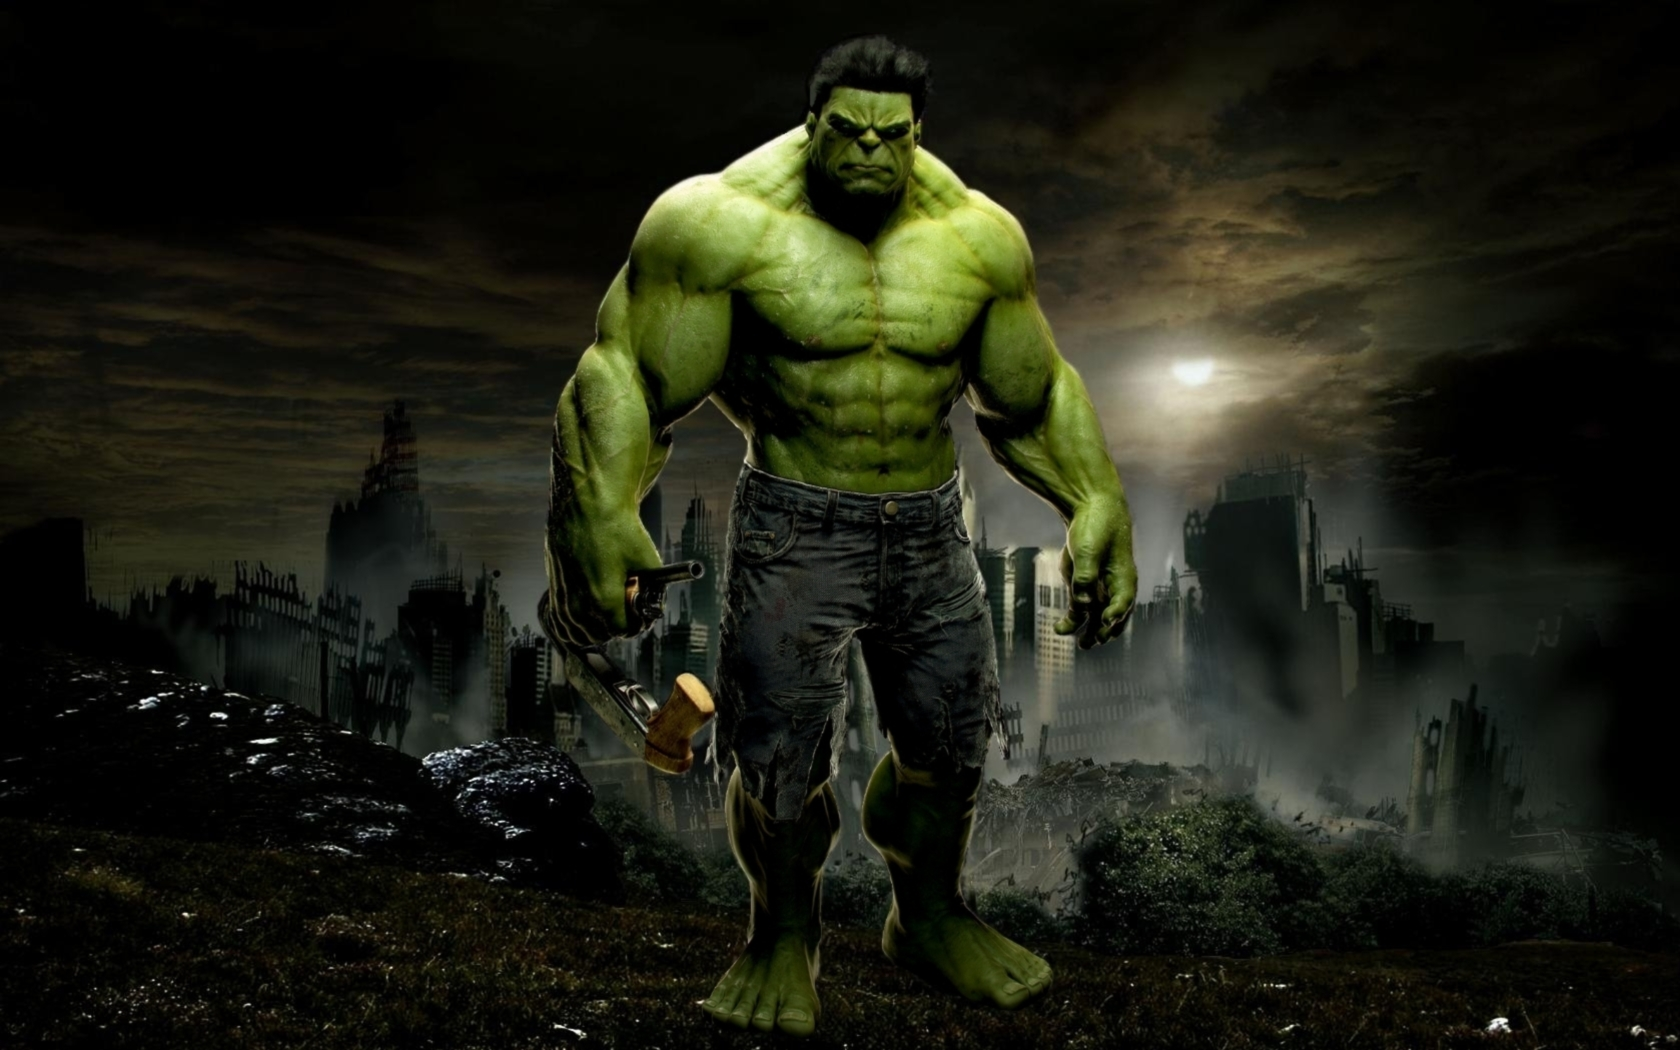 Download Awesome Marvel Hulk Wallpaper 1680x1050 | Full HD Wallpapers